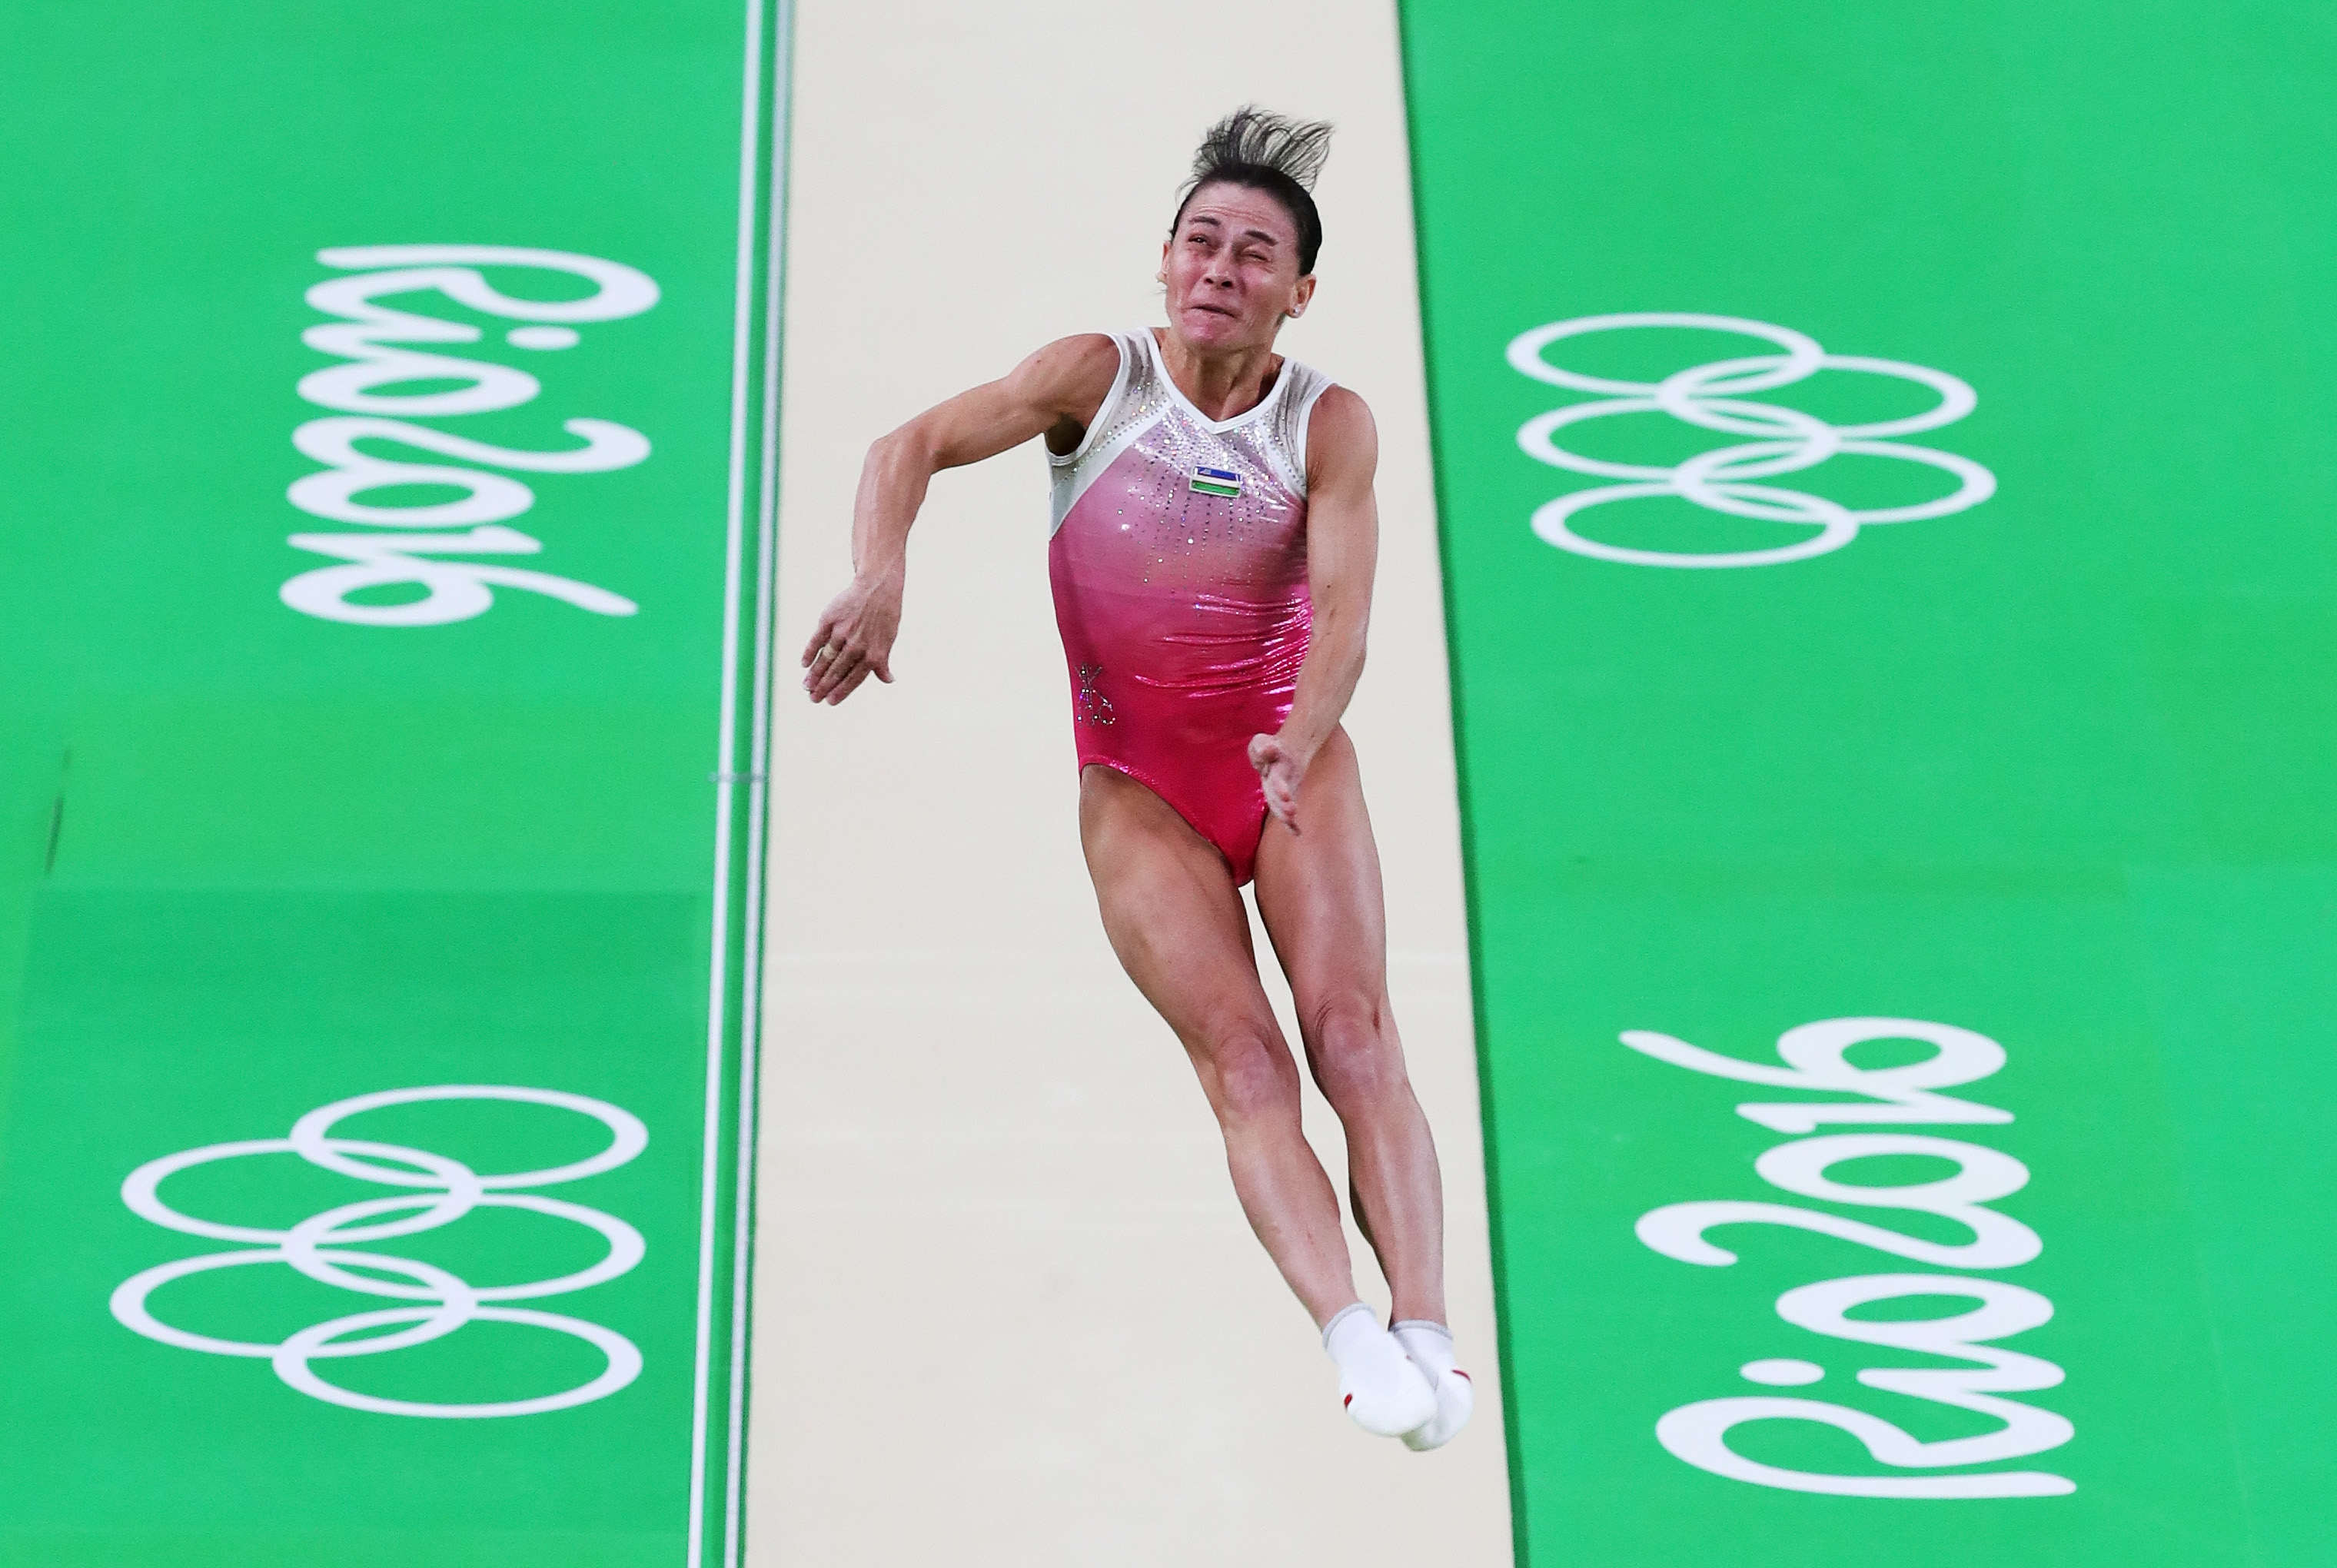 This 41 Year Old Olympic Gymnast Keeps Competing For Inspirational Reason GettyImages 586885438